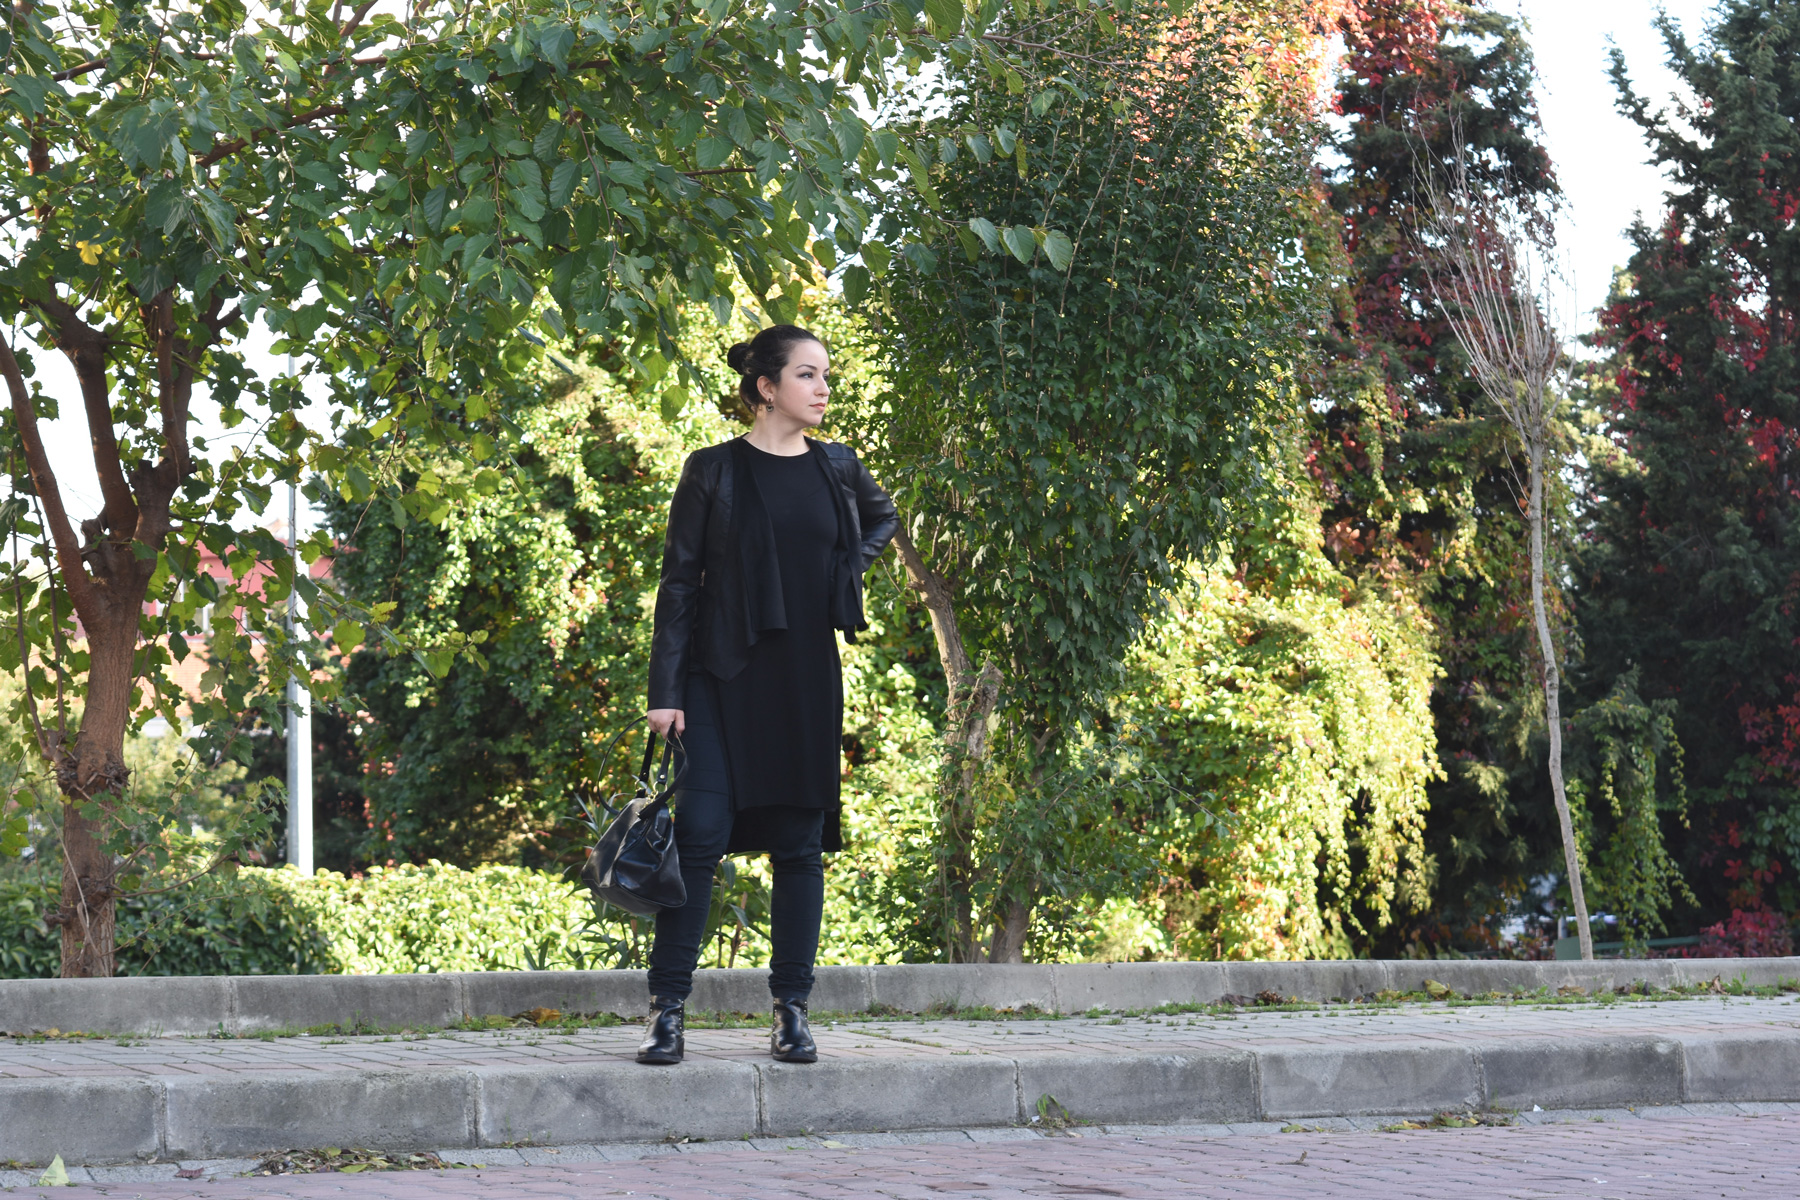 sevgin goktas ozsan all black stradivarious waterfall jacket autumn fall winter bershka top DSC_1928